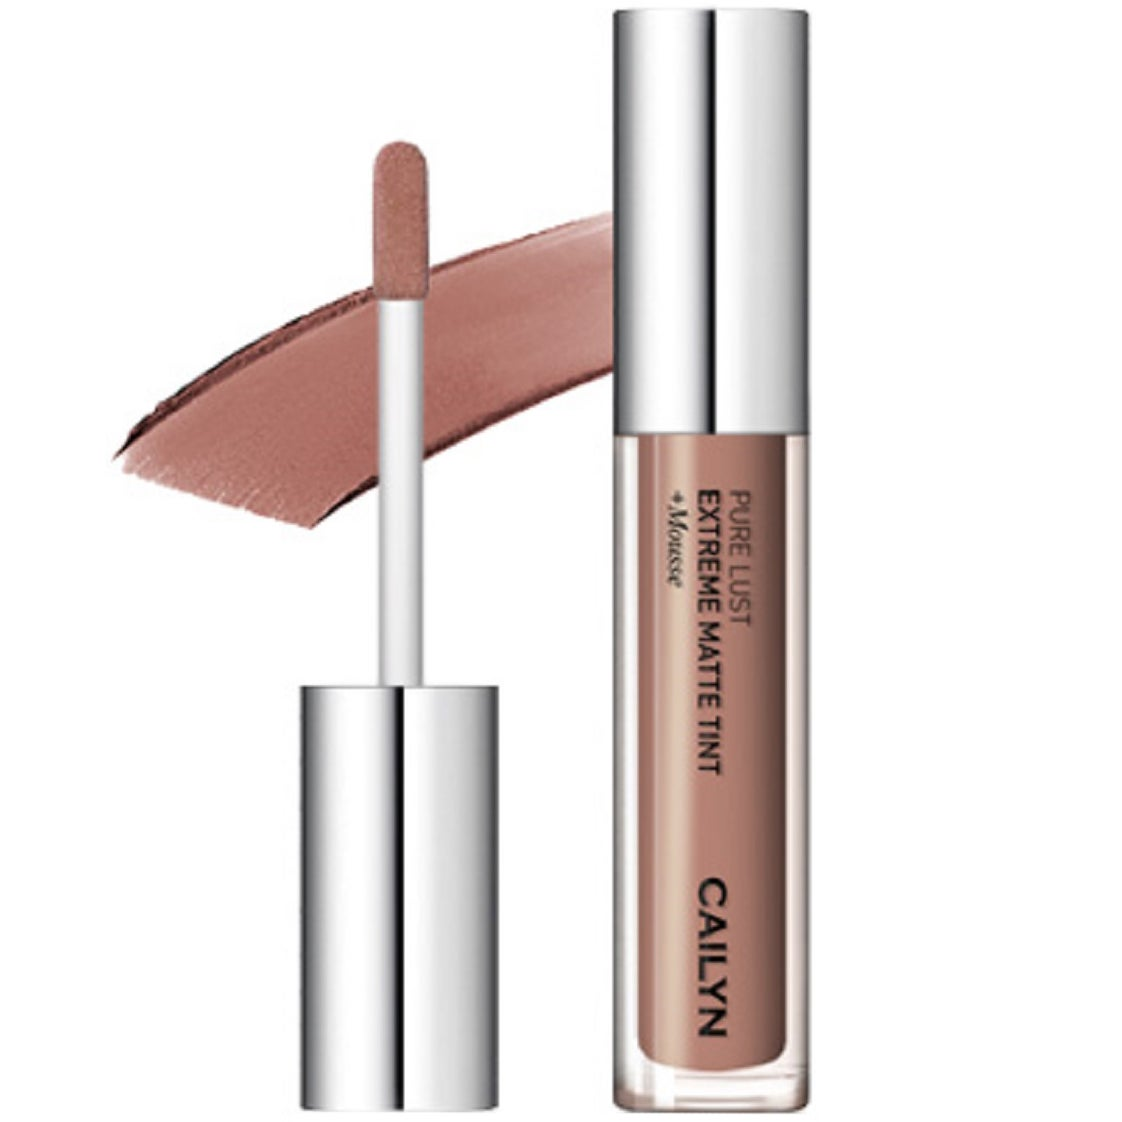 Cailyn Cosmetics Cailyn Pure Lust Extreme Matte Tint Mousse